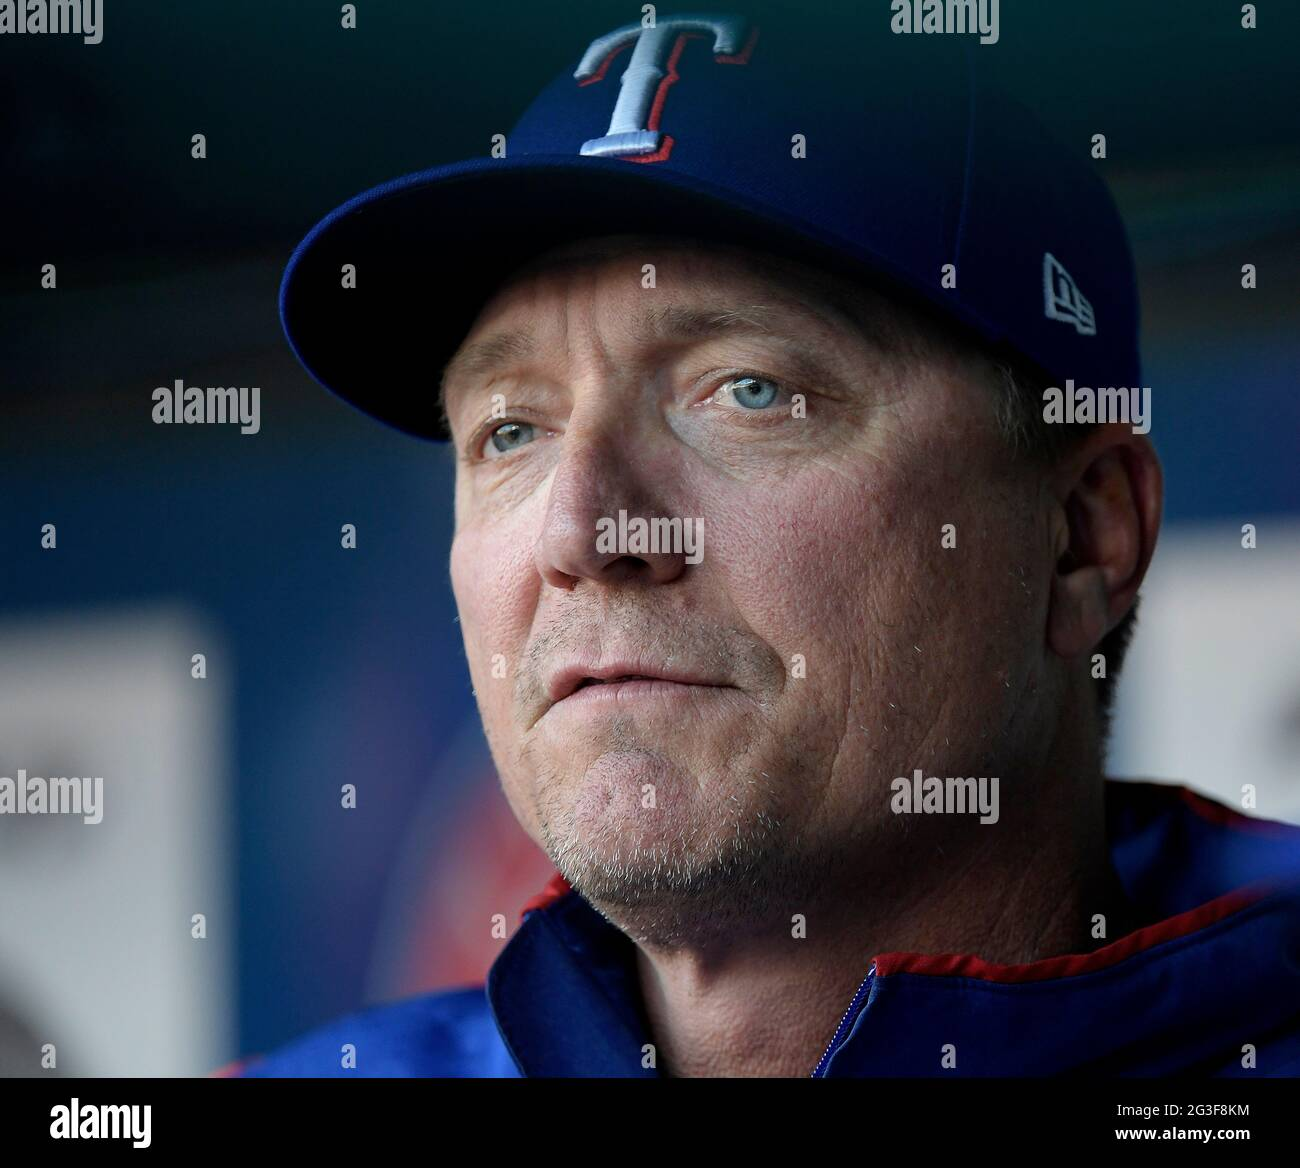 Arlington, USA. 20th Apr, 2018. In an April 20, 2018, file image, Texas Rangers manager Jeff Banister is in the dugout at Globe Life Park in Arlington, Texas, against the Seattle Mariners. (Photo by Max Faulkner/Fort Worth Star-Telegram/TNS/Sipa USA) Credit: Sipa USA/Alamy Live News Stock Photo